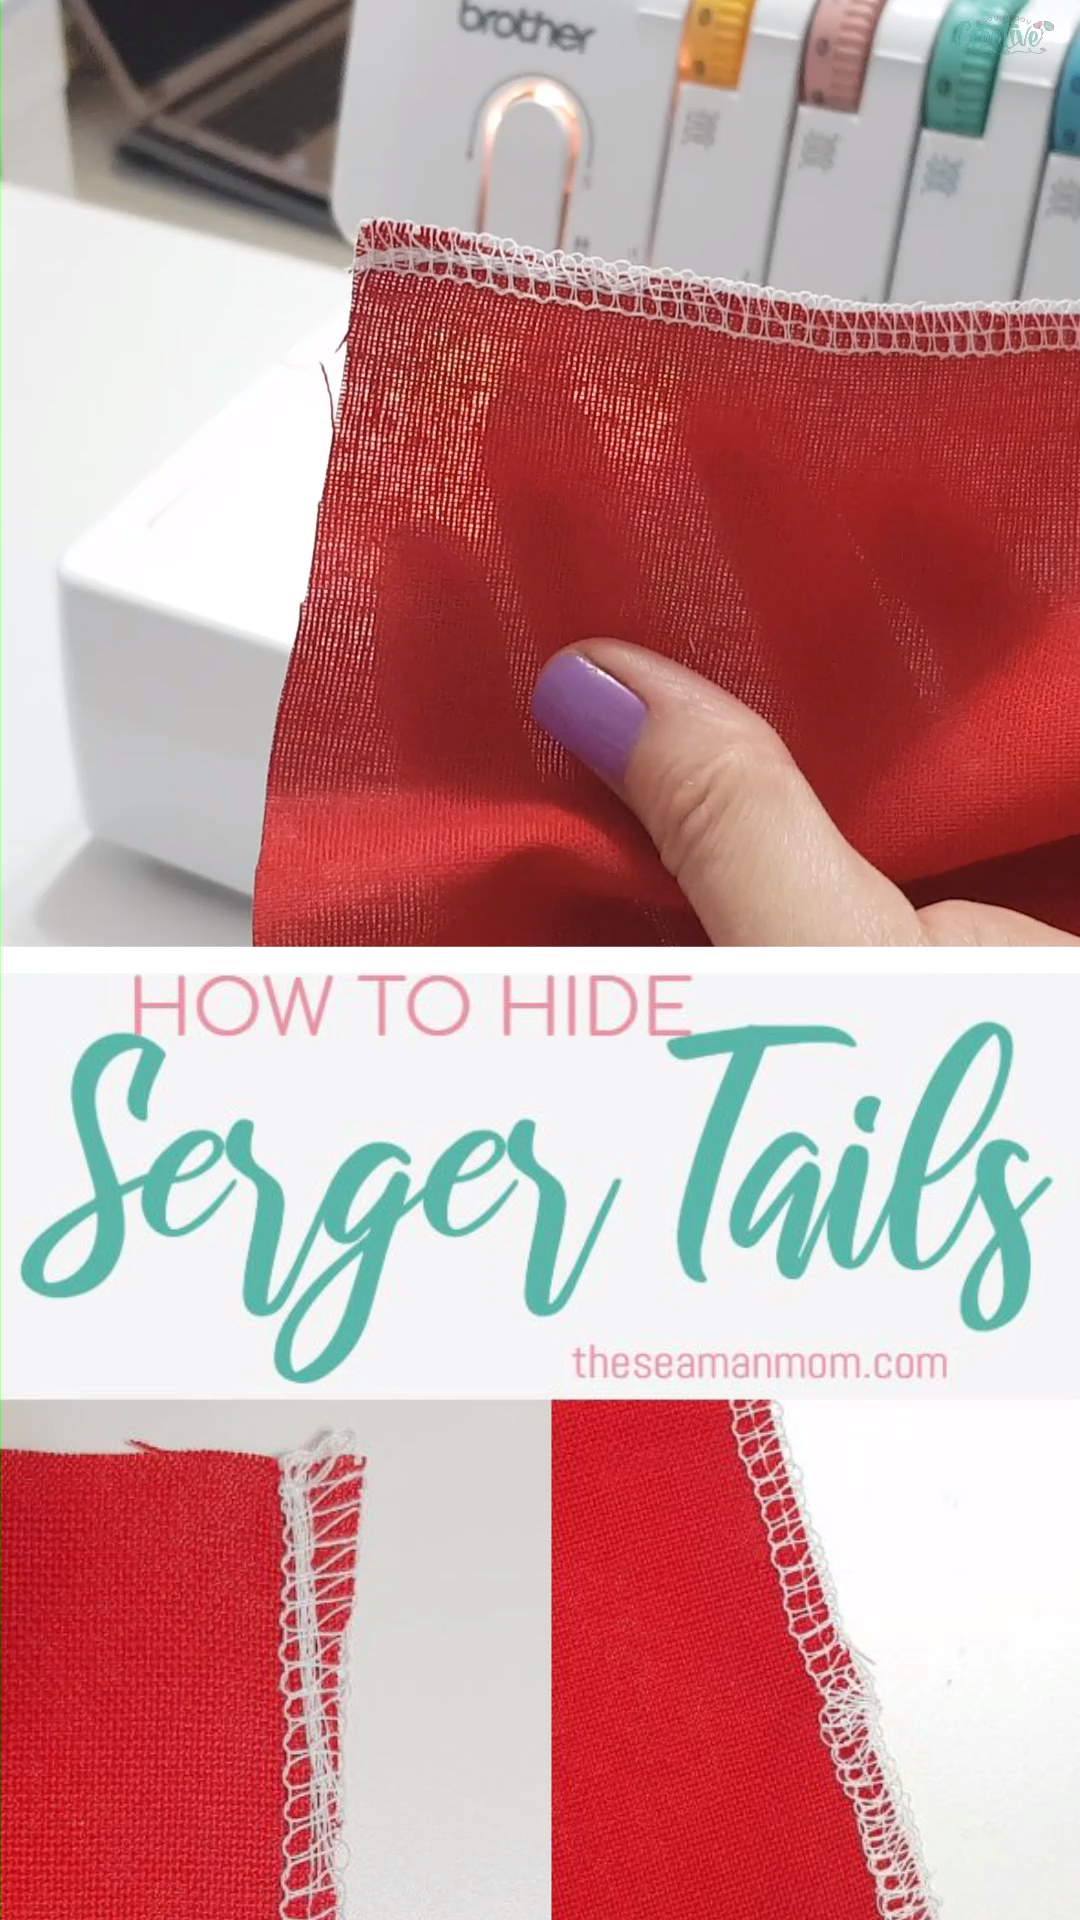 HOW TO HIDE SERGER TAILS START & END